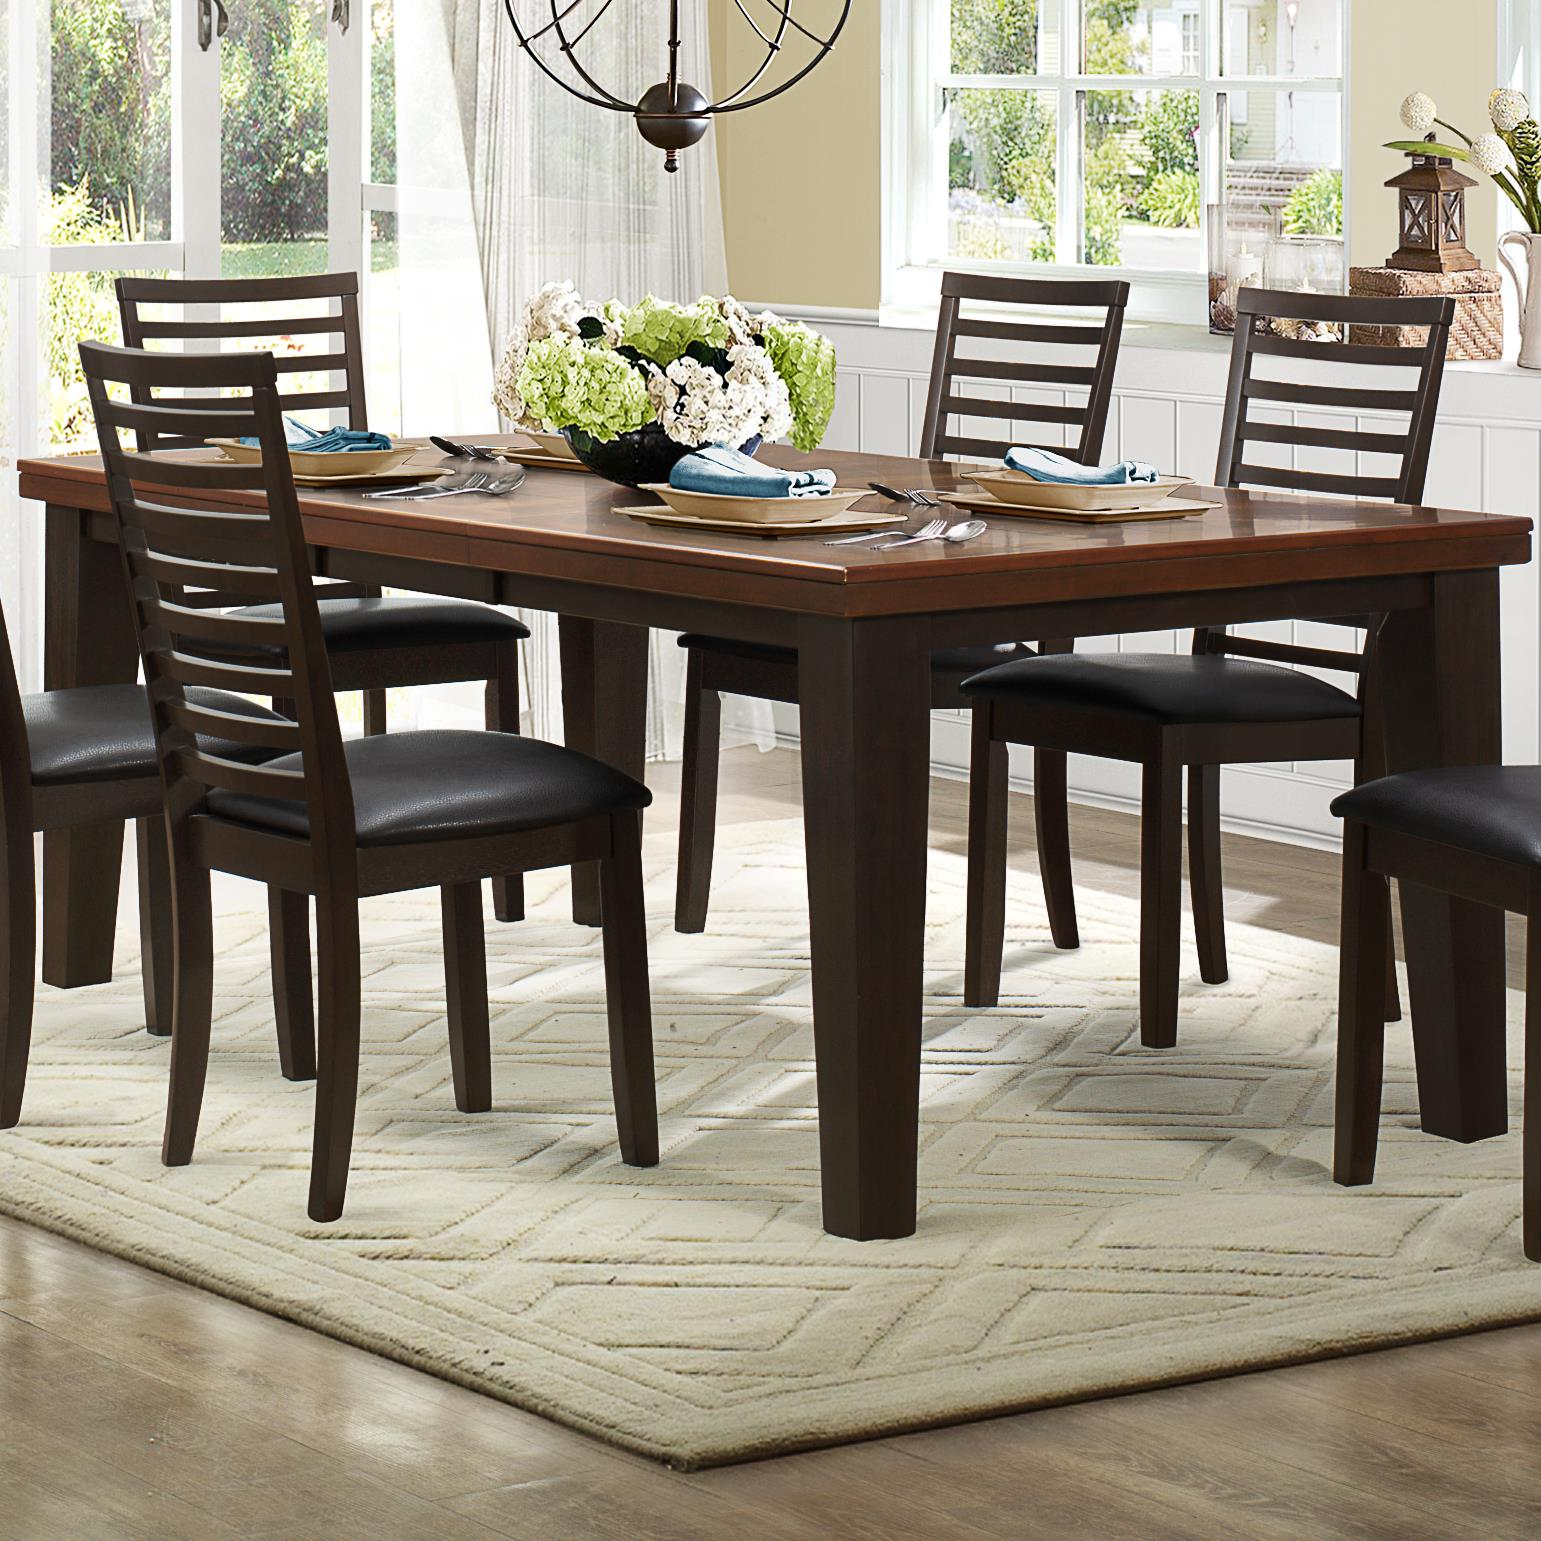 Homelegance Walsh Rectangle Dining Table with Butterfly